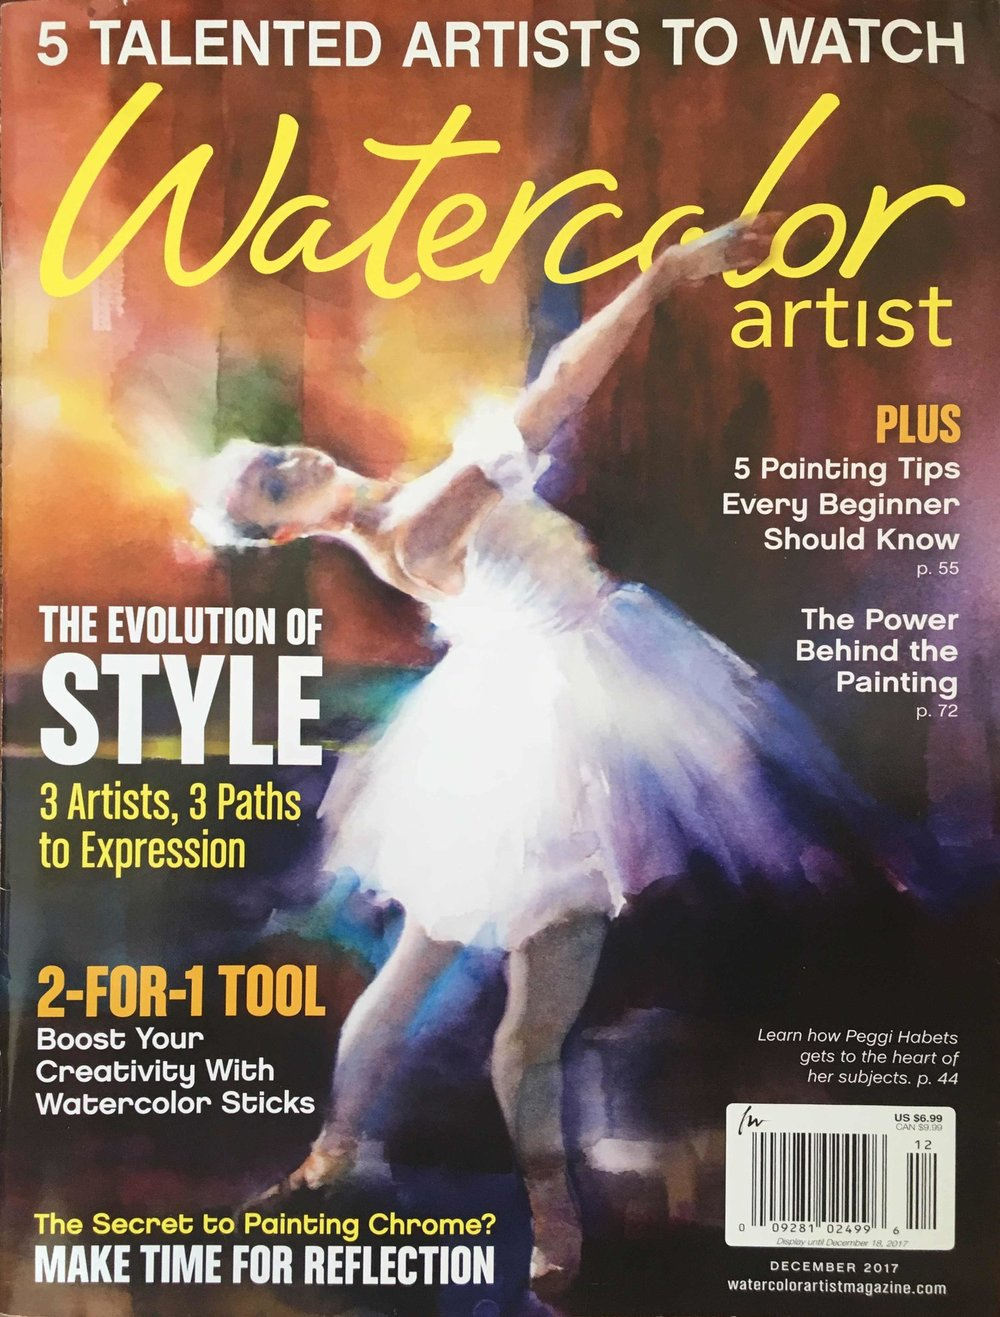 WatercolorArtistCover.jpg